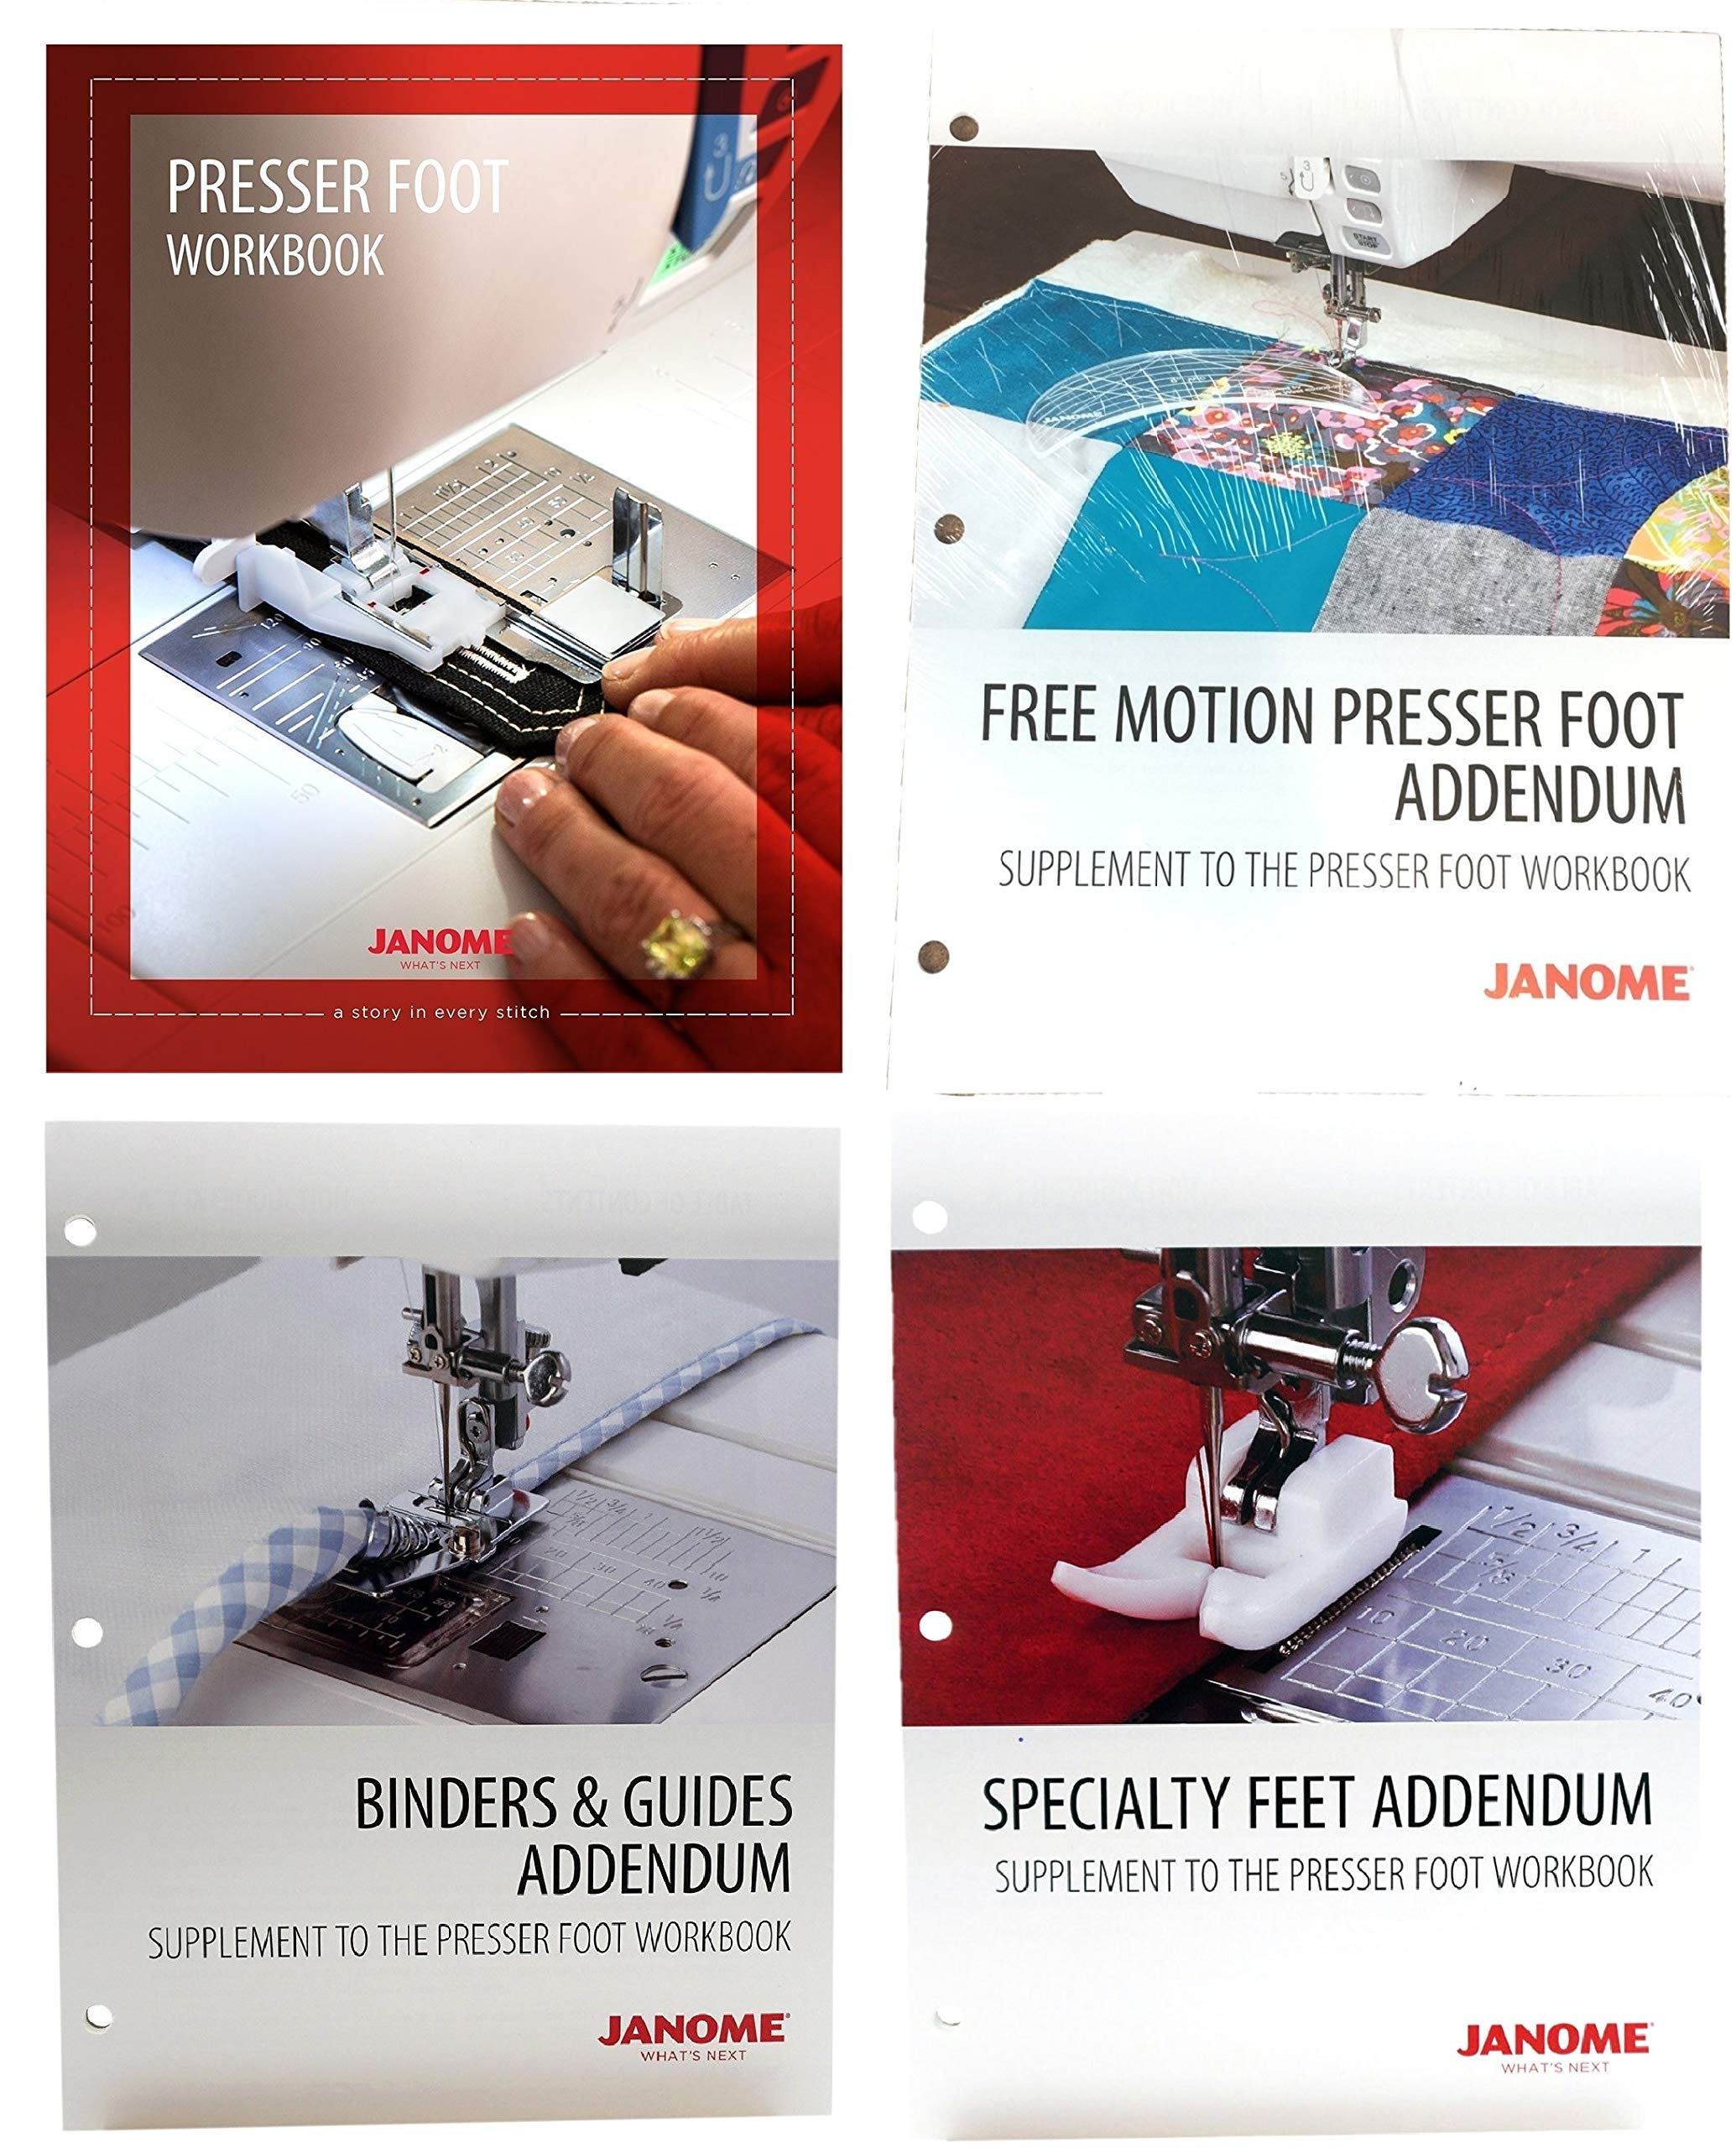 Janome Sewing Machine Presser Foot Workbook with Free Motion Presser Foot, Binders & Guides, and Specialty Feet Addendums by Janome